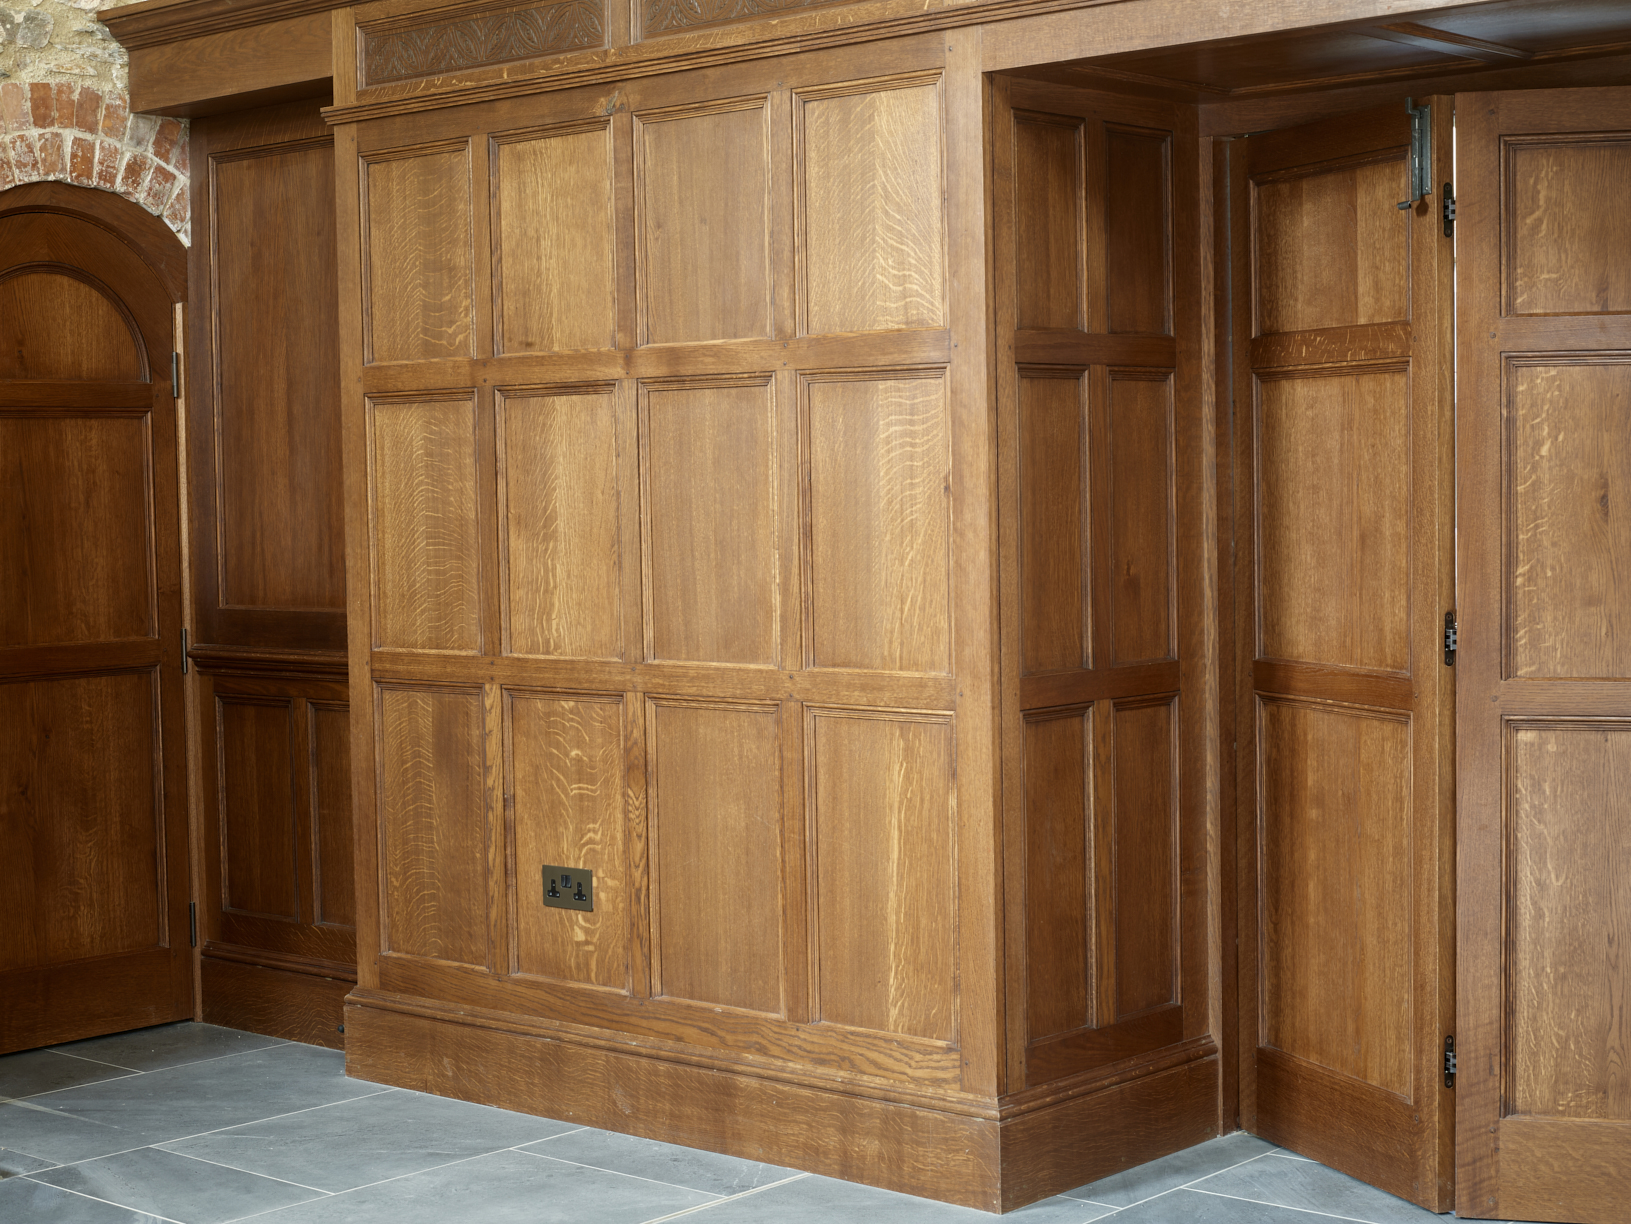 oak panelling painted panelling period panelling panelled rooms